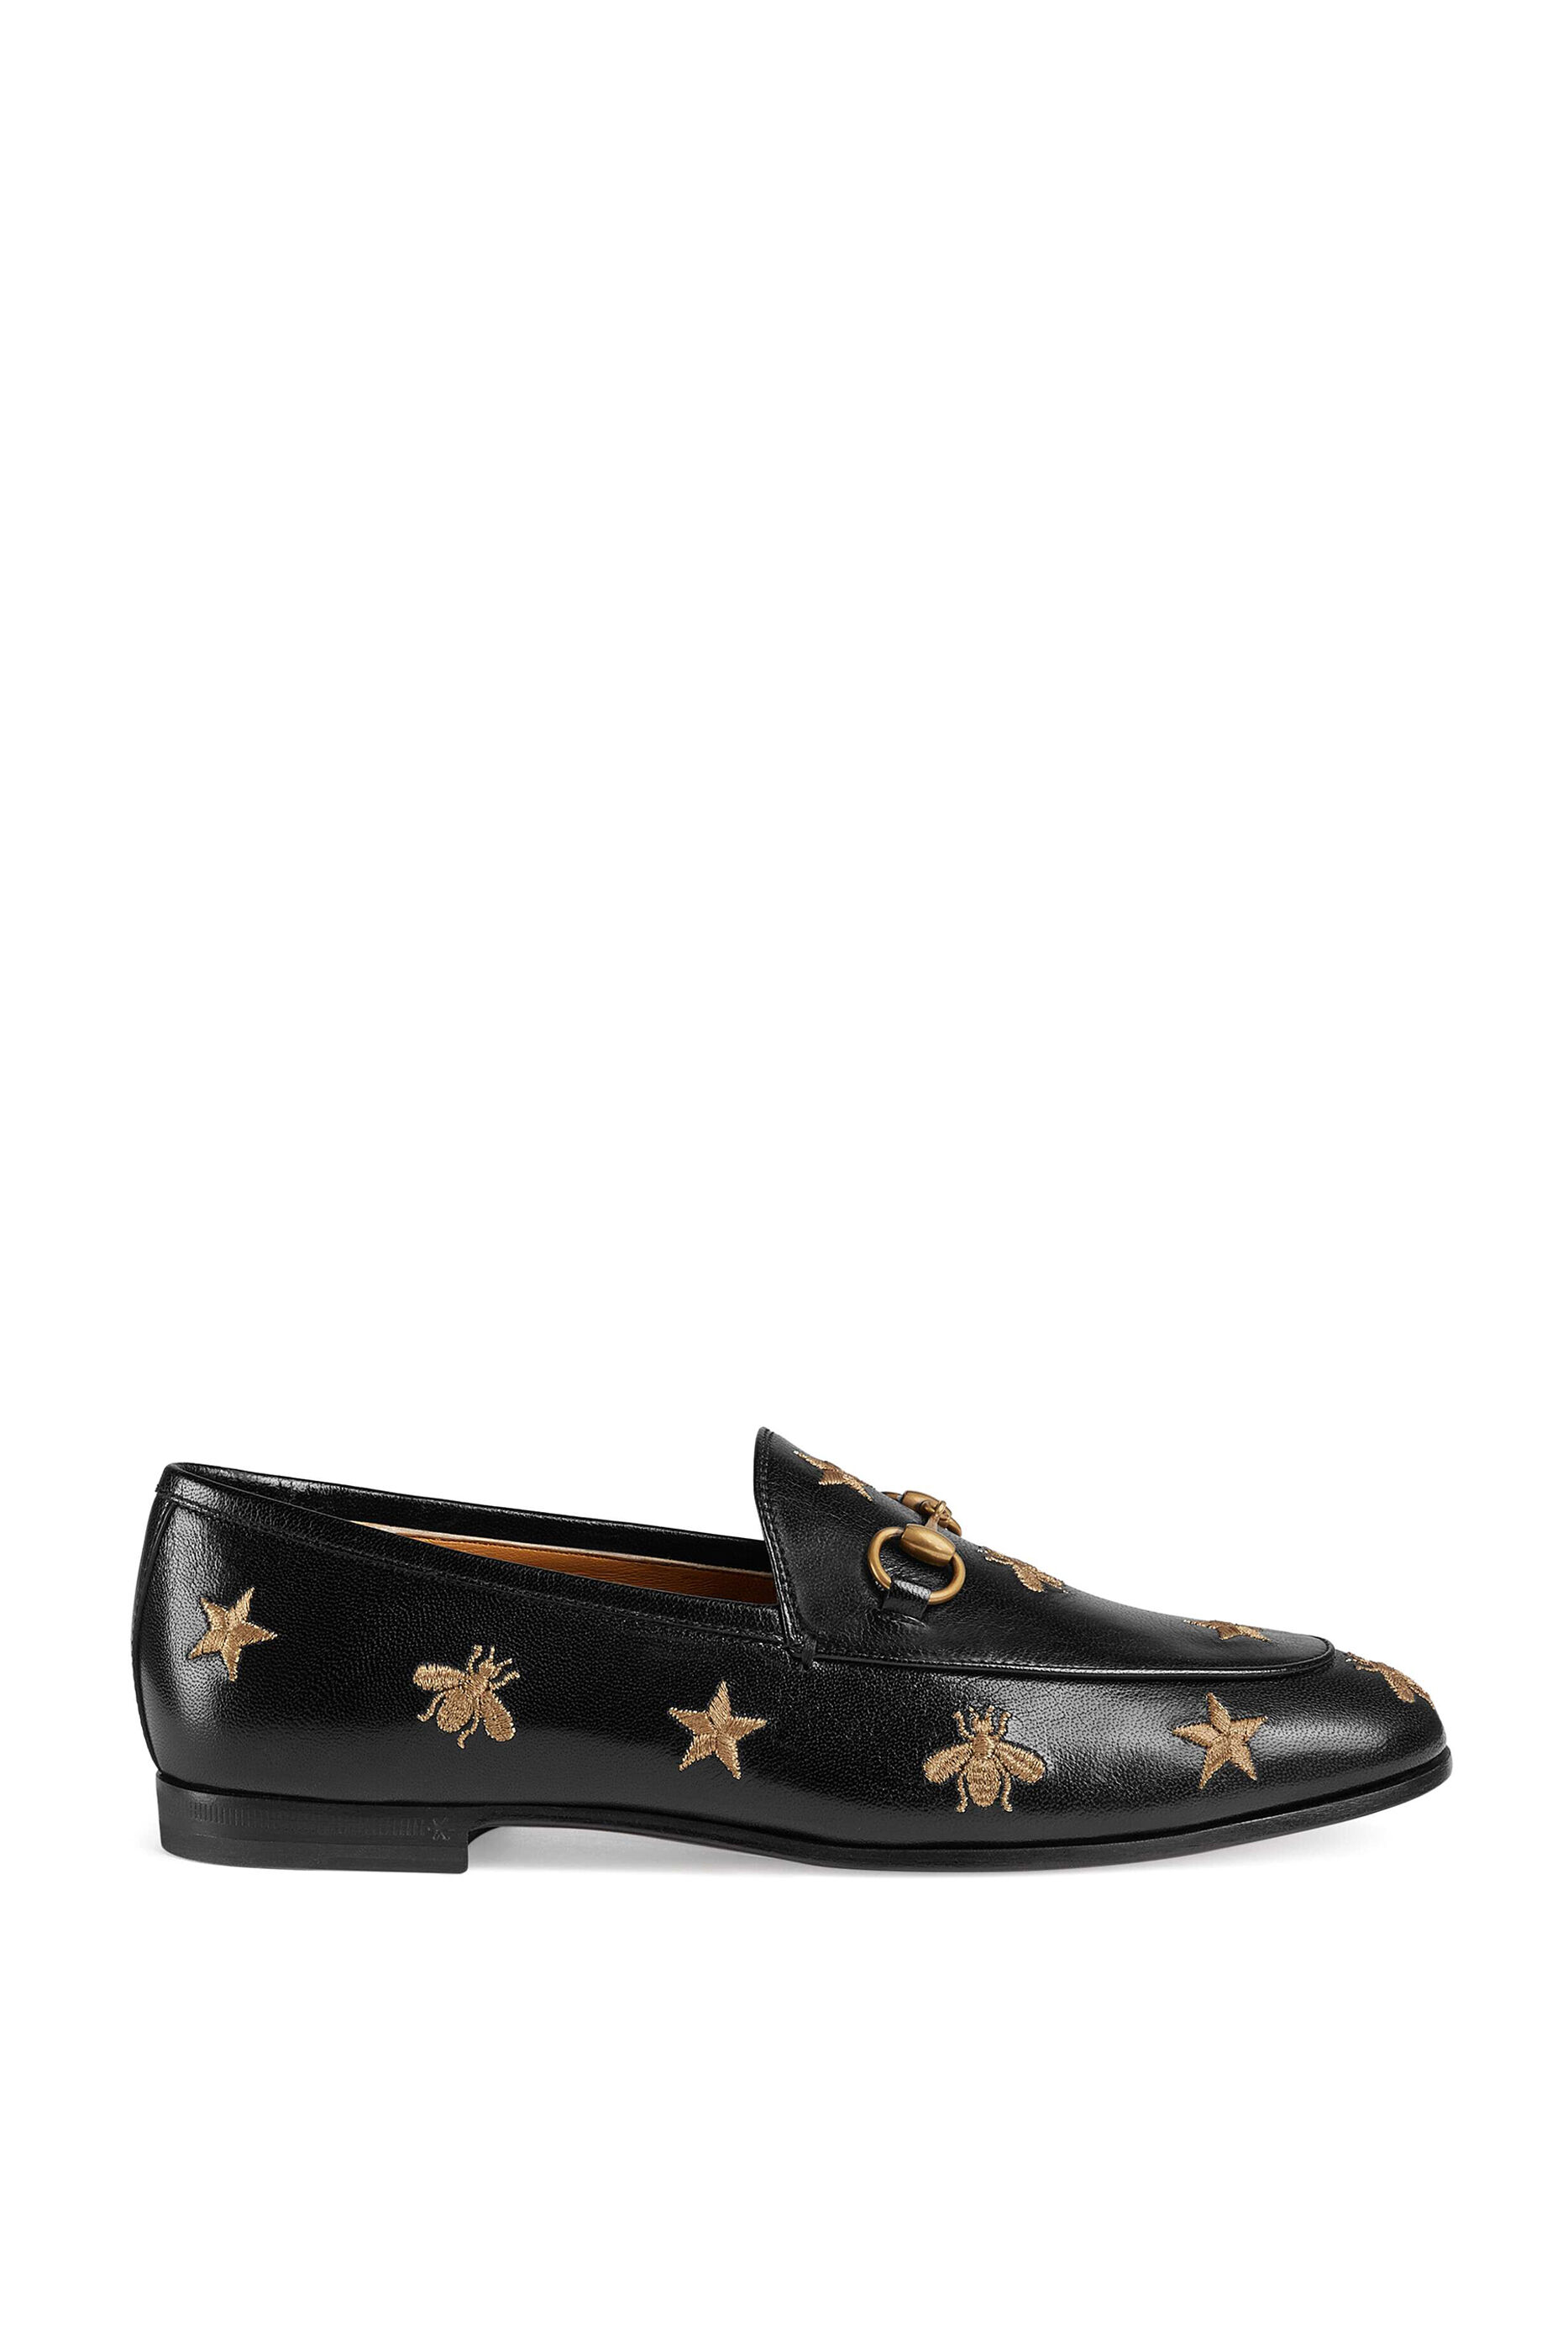 Buy Gucci Gucci Jordaan Embroidered